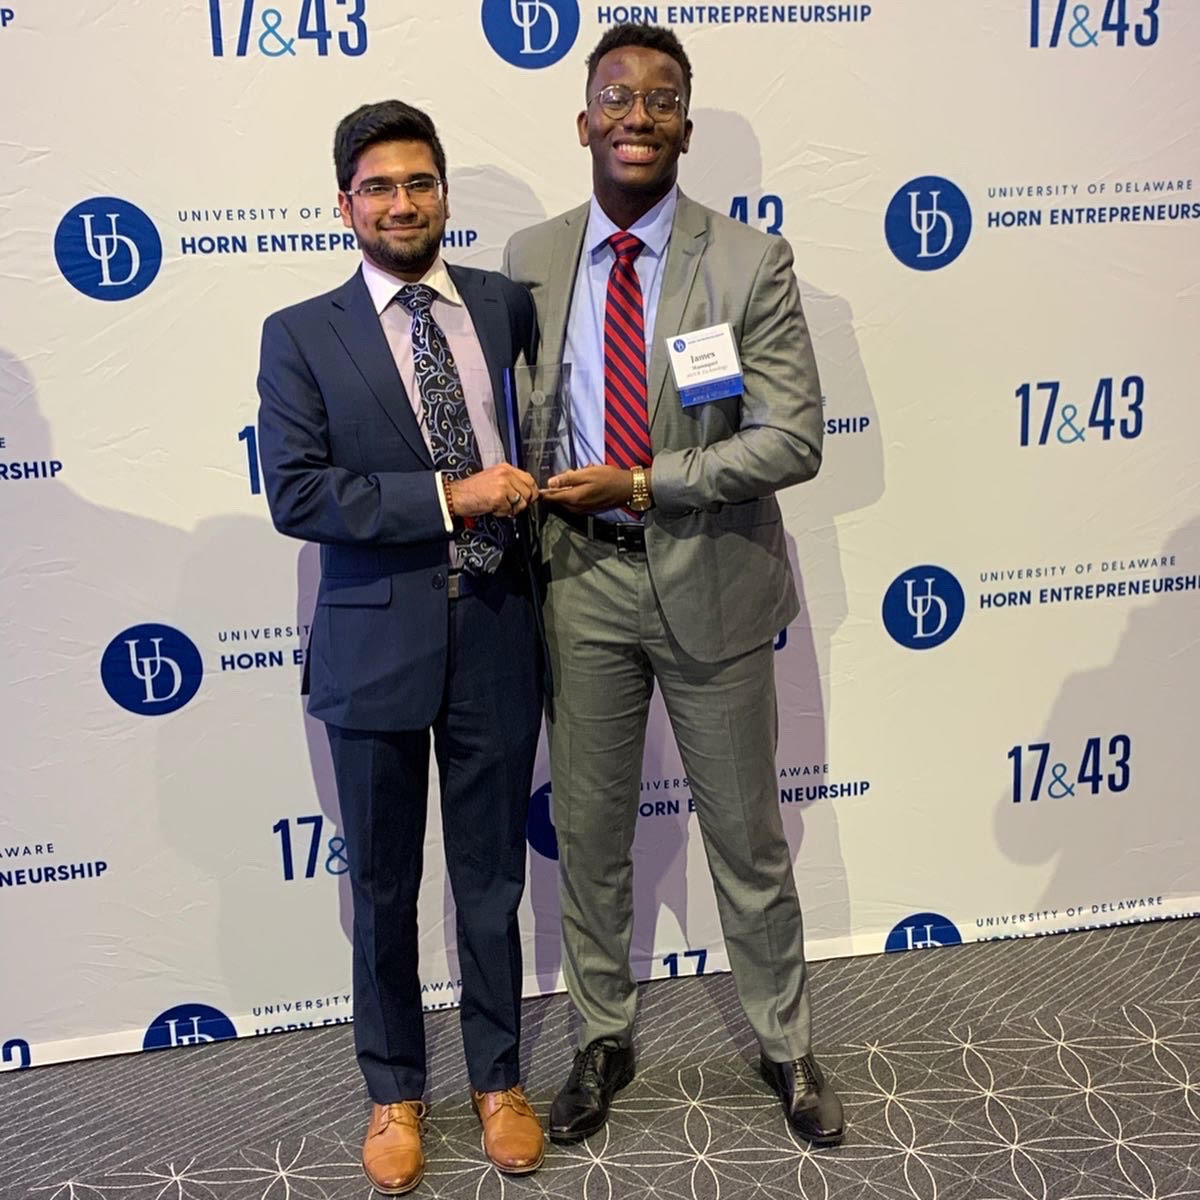 University seniors take home big money for their business in regional pitch competition